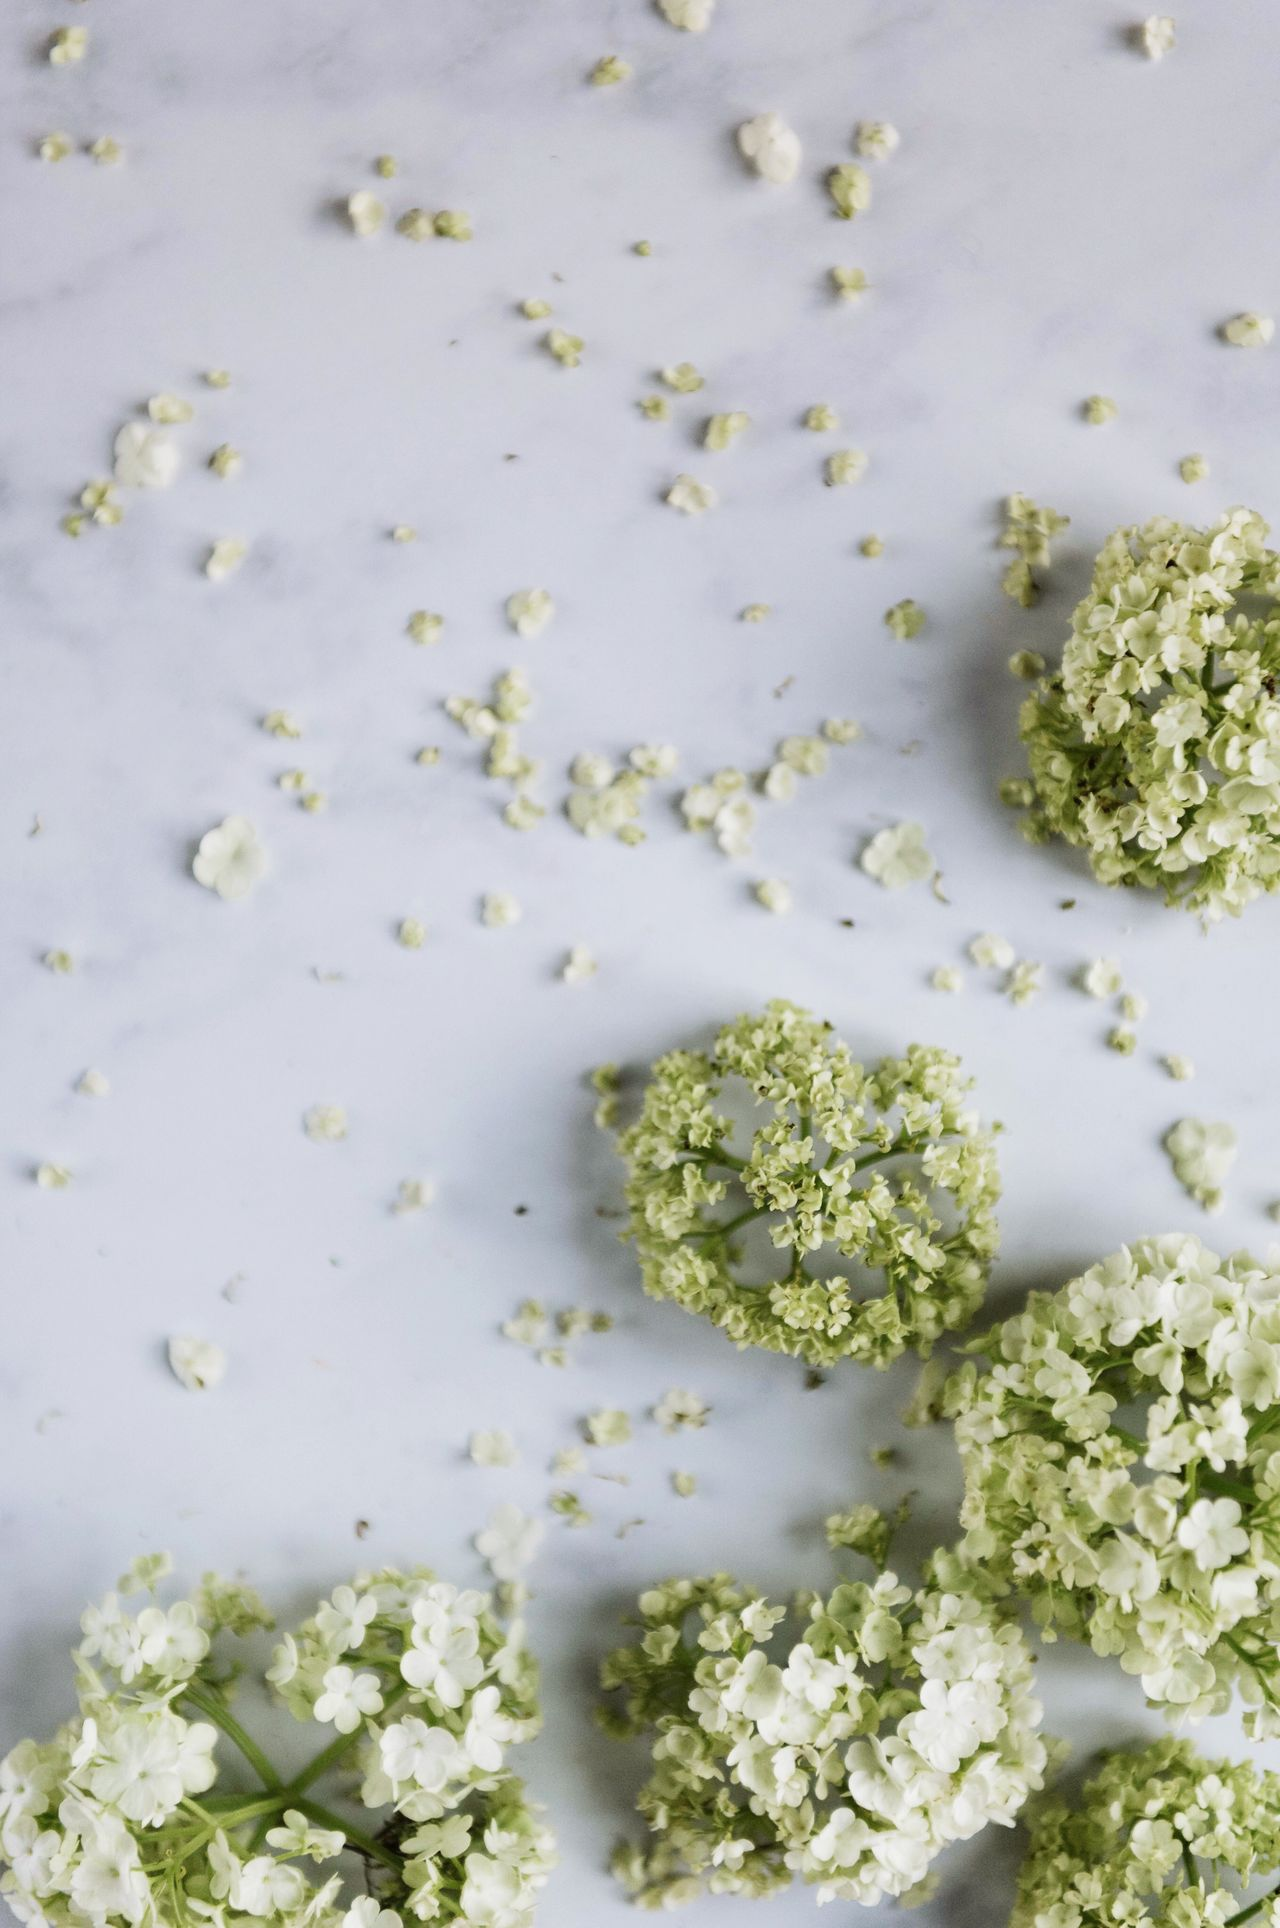 Flower Schneeball Blume Close-up High Angle View Marble Table Flower Mess Blossom White Background Flower Head Freshness Day Petals Faded Faded Beauty Flowers Fragility Lifestyles No People Summer Viburnum Viburnum Plicatum Mess